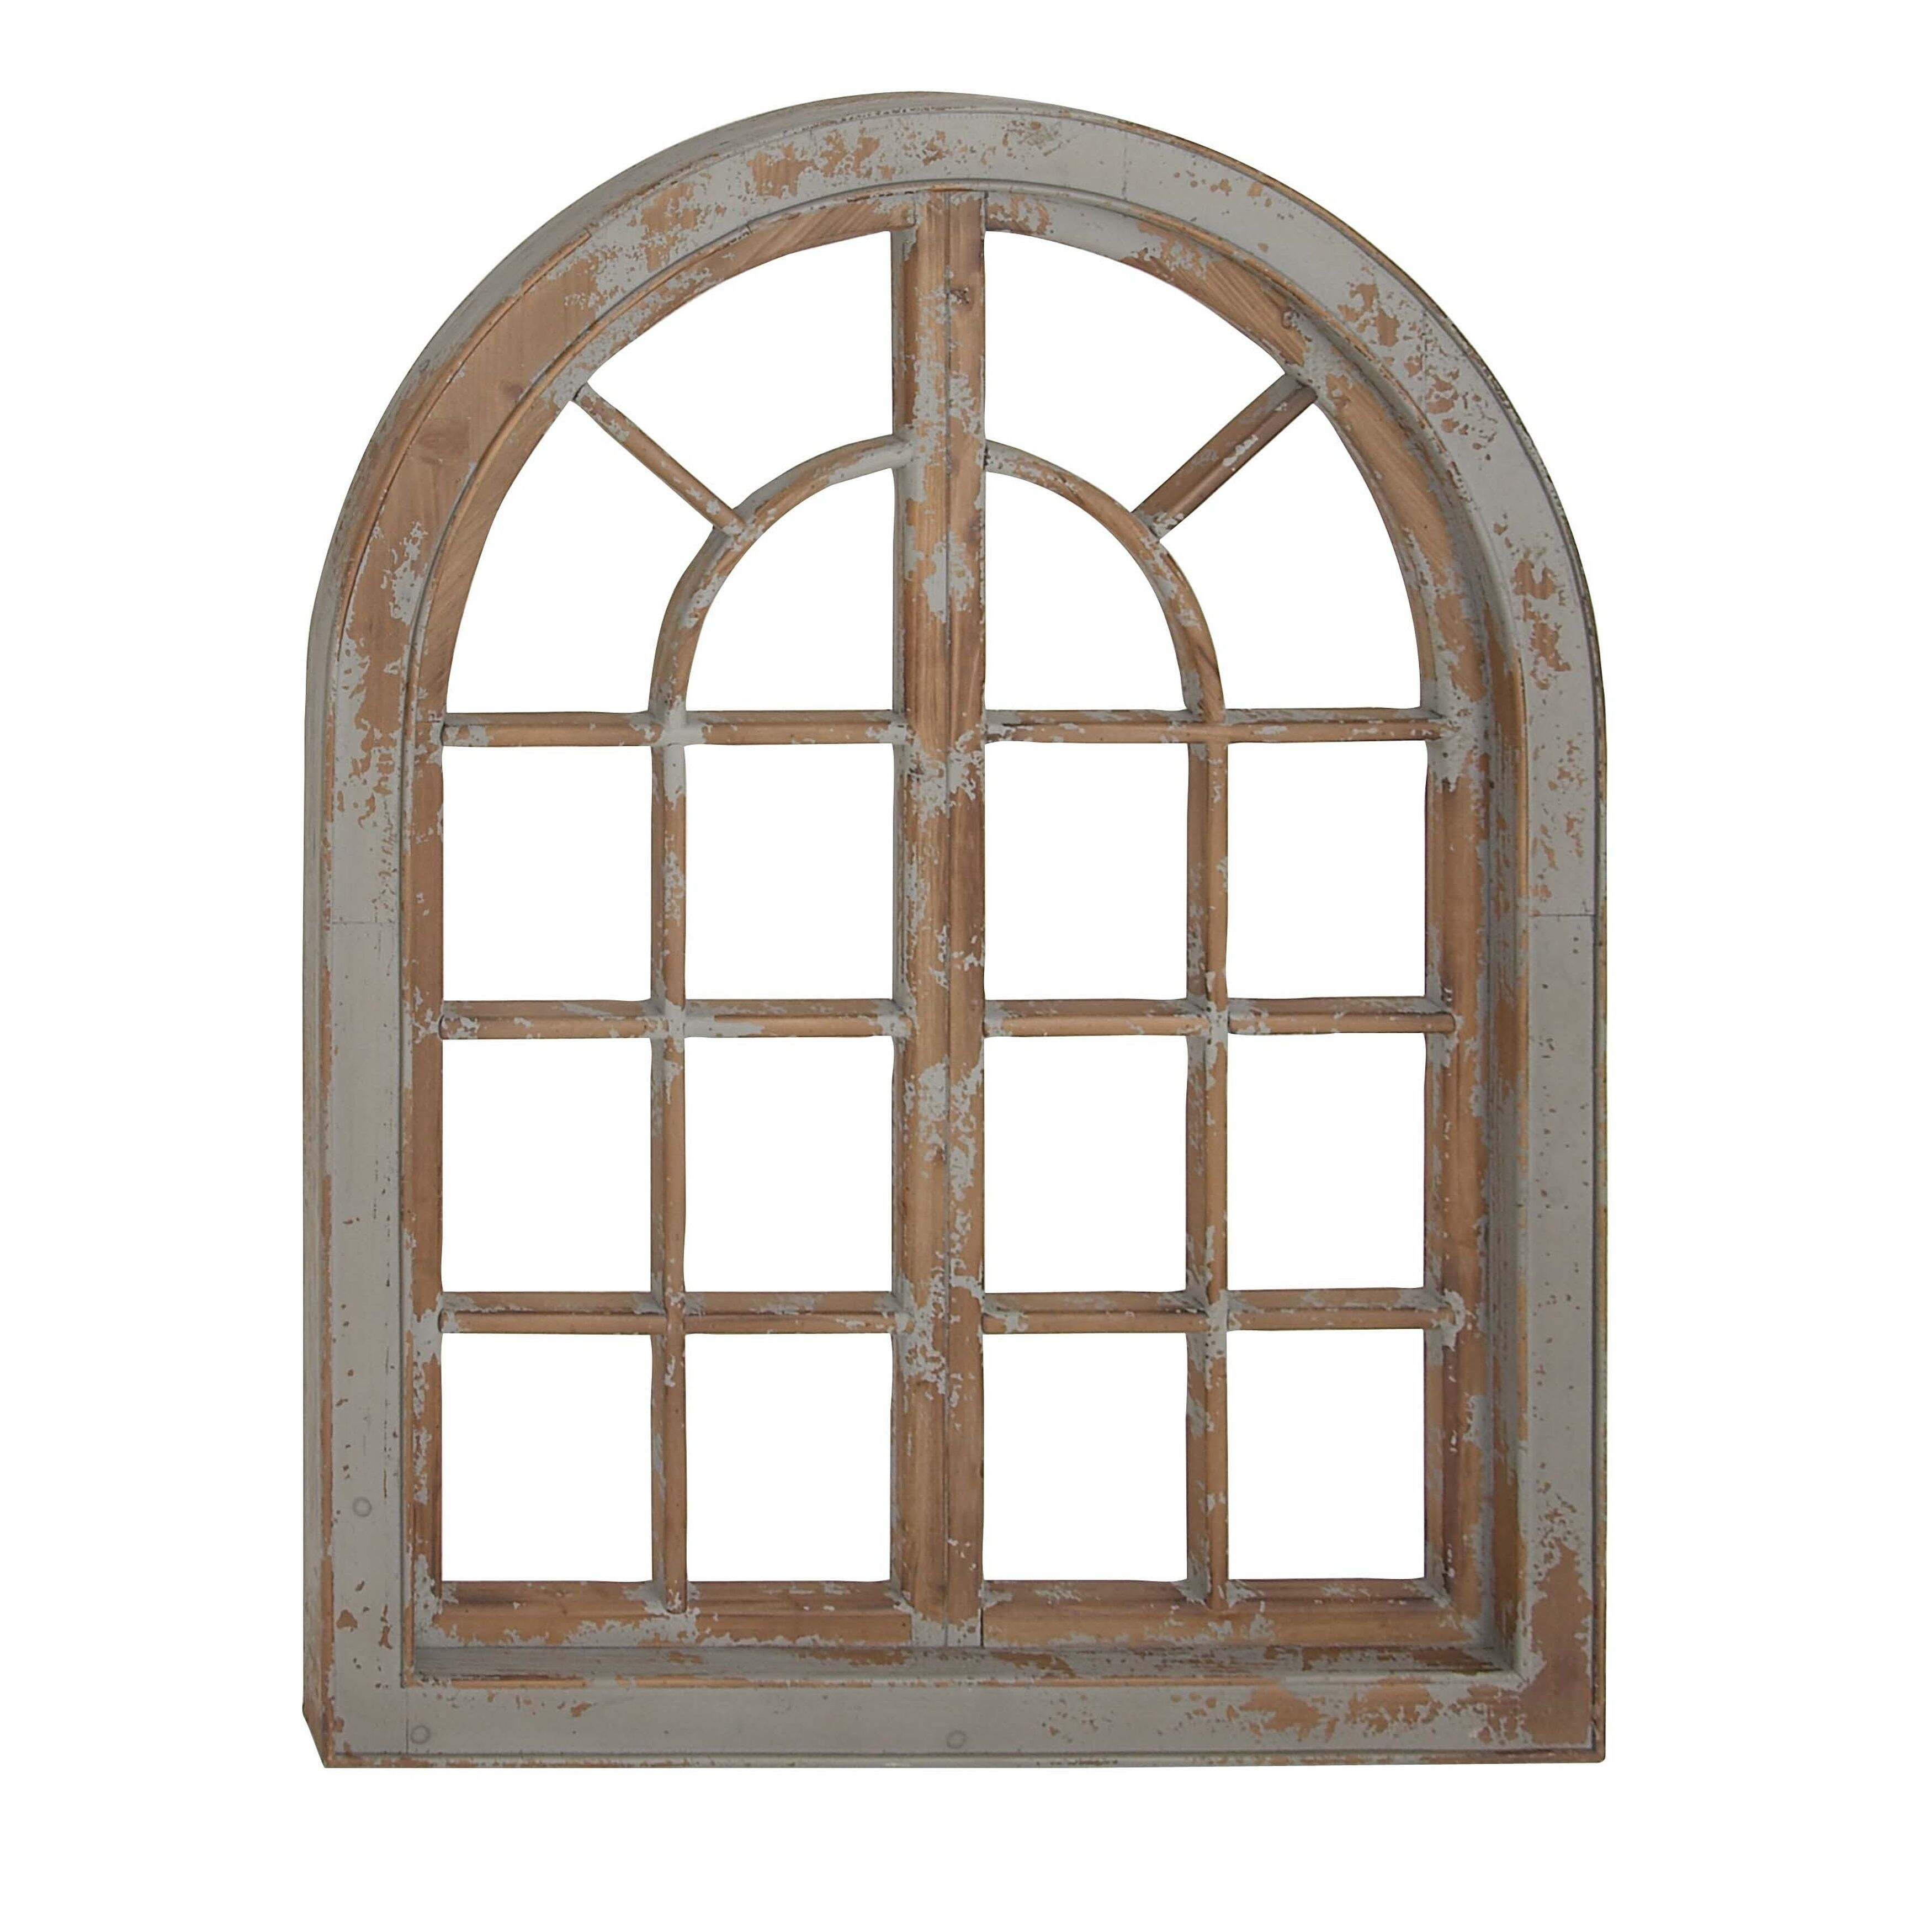 Wall Decor Wooden Traditional Arched Wooden Wall Decor